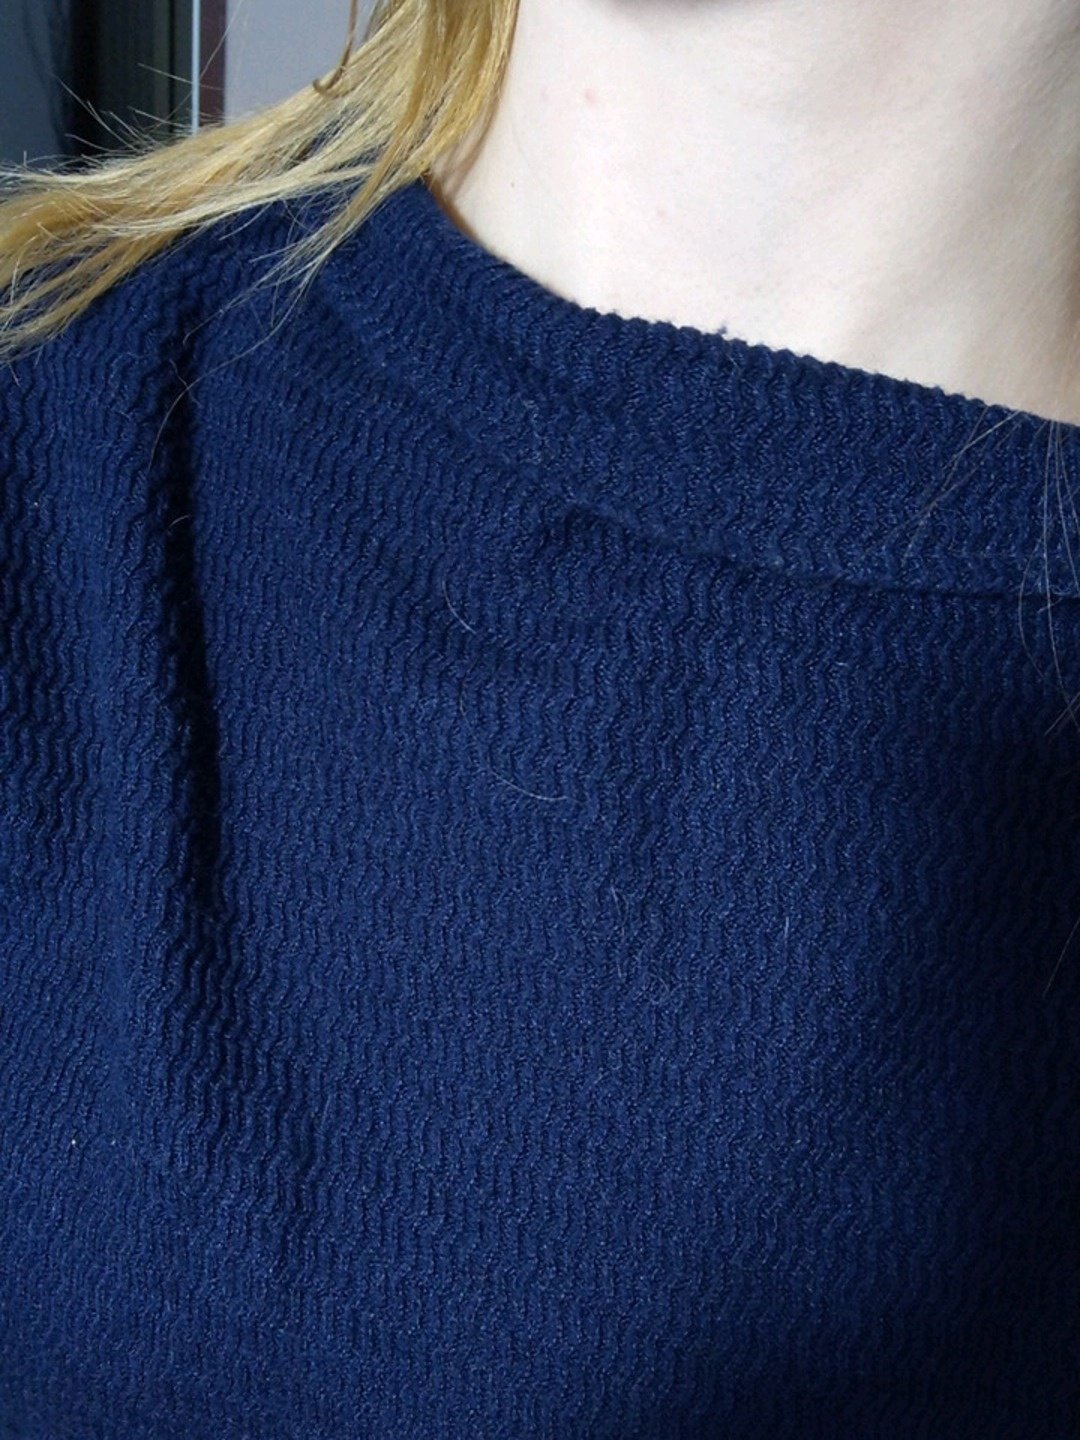 Women's jumpers & cardigans - LINDEX photo 3